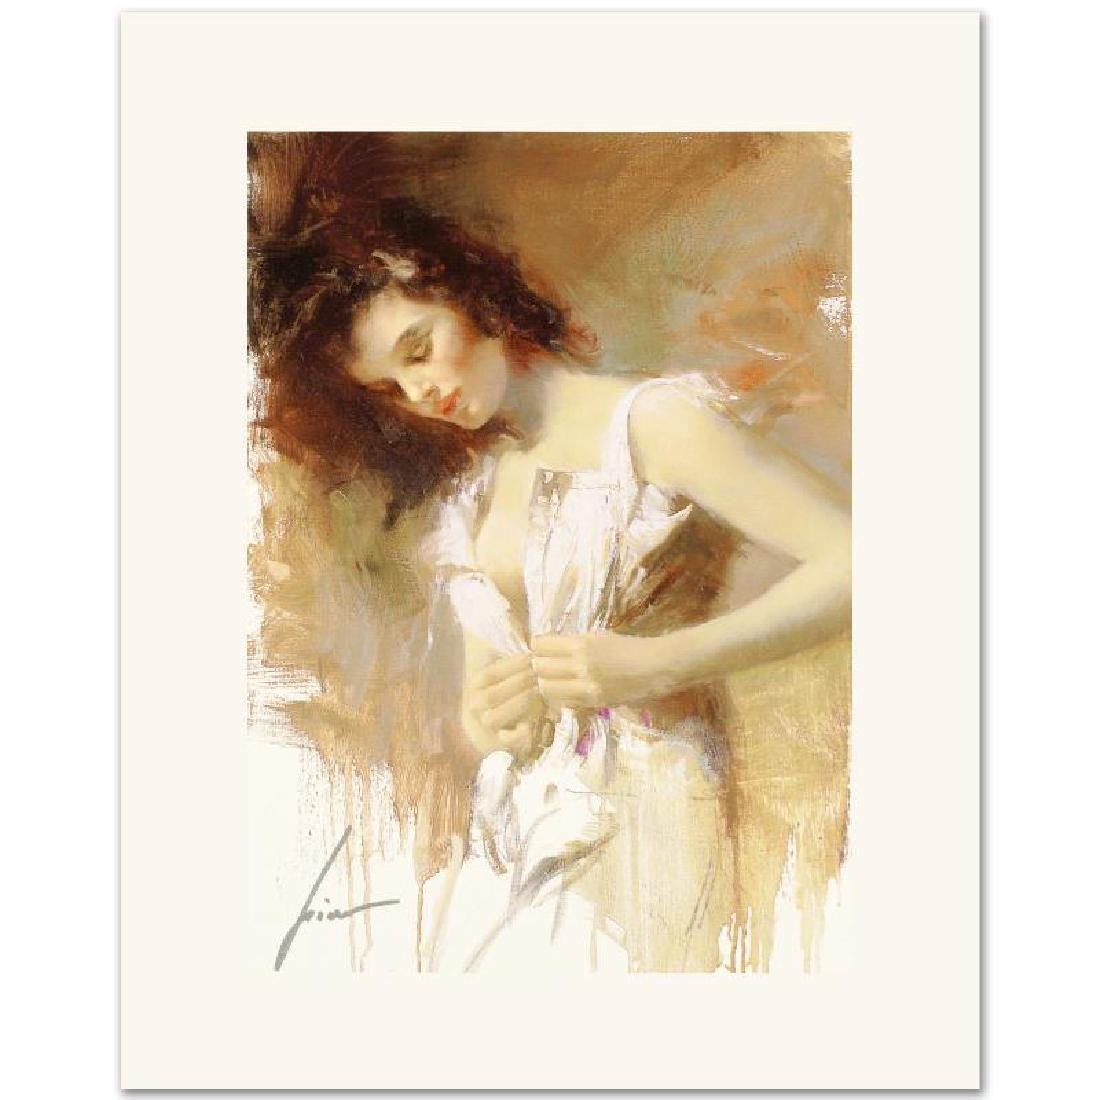 White Camisole Limited Edition Giclee on Canvas by Pino